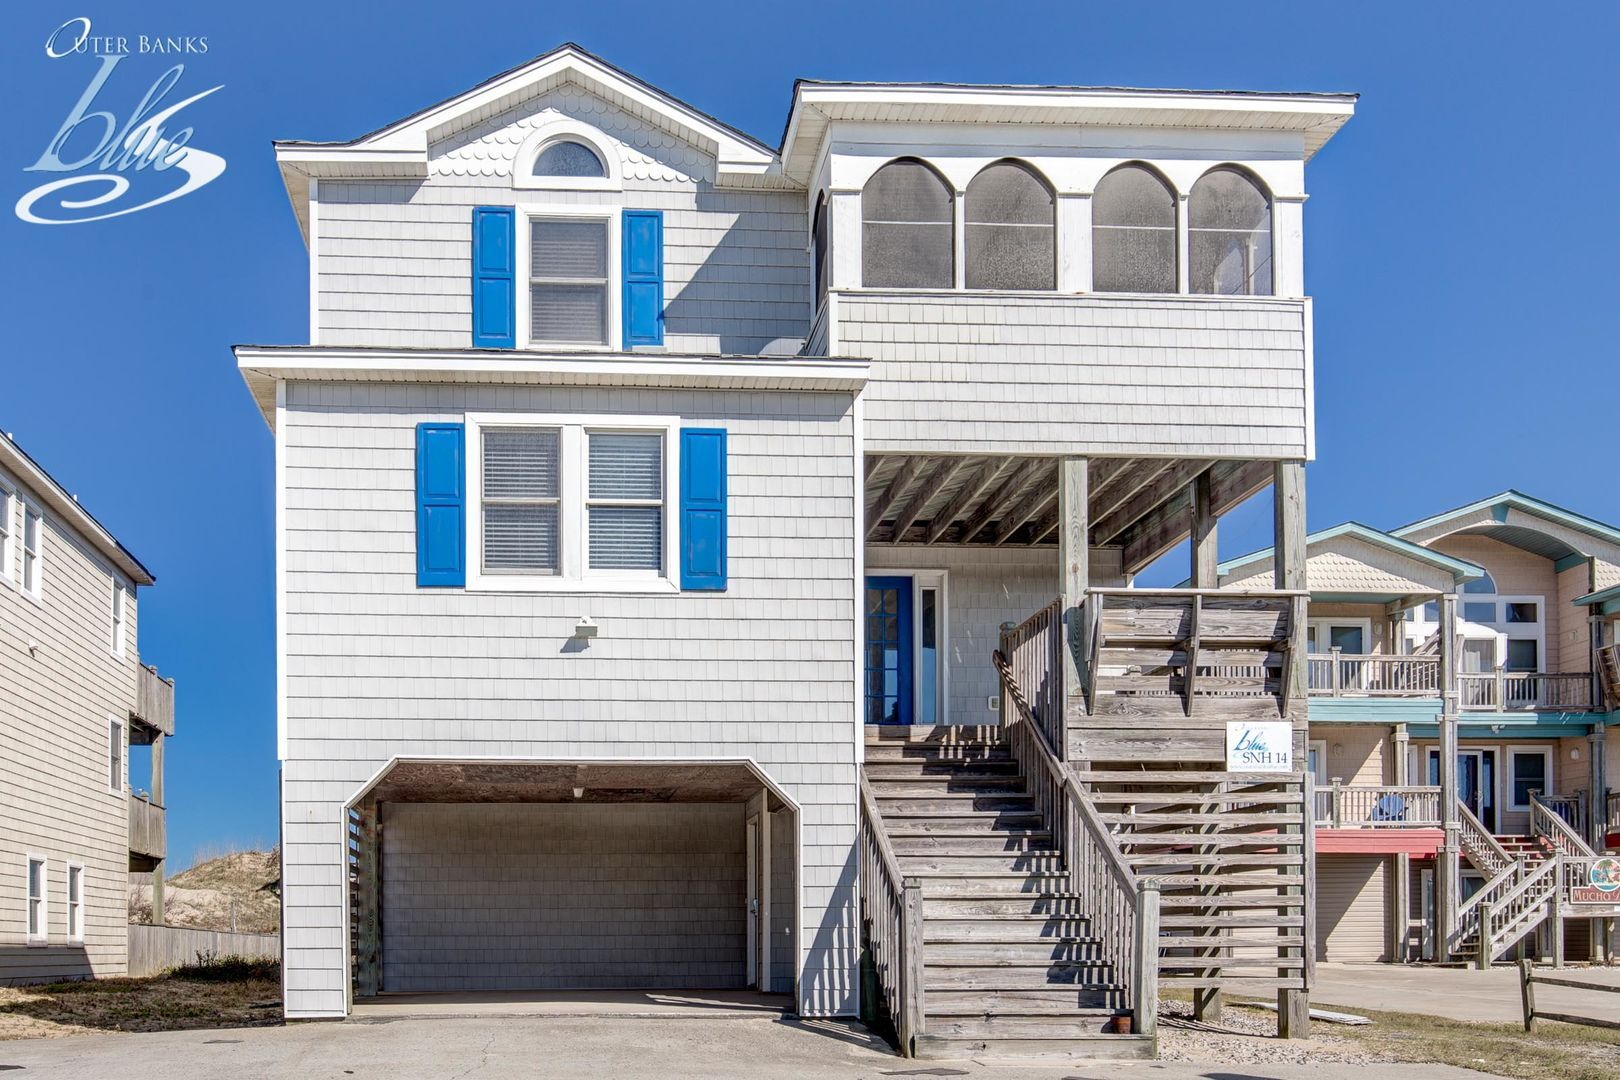 A great vacation on the Outer Banks awaits you at Sea